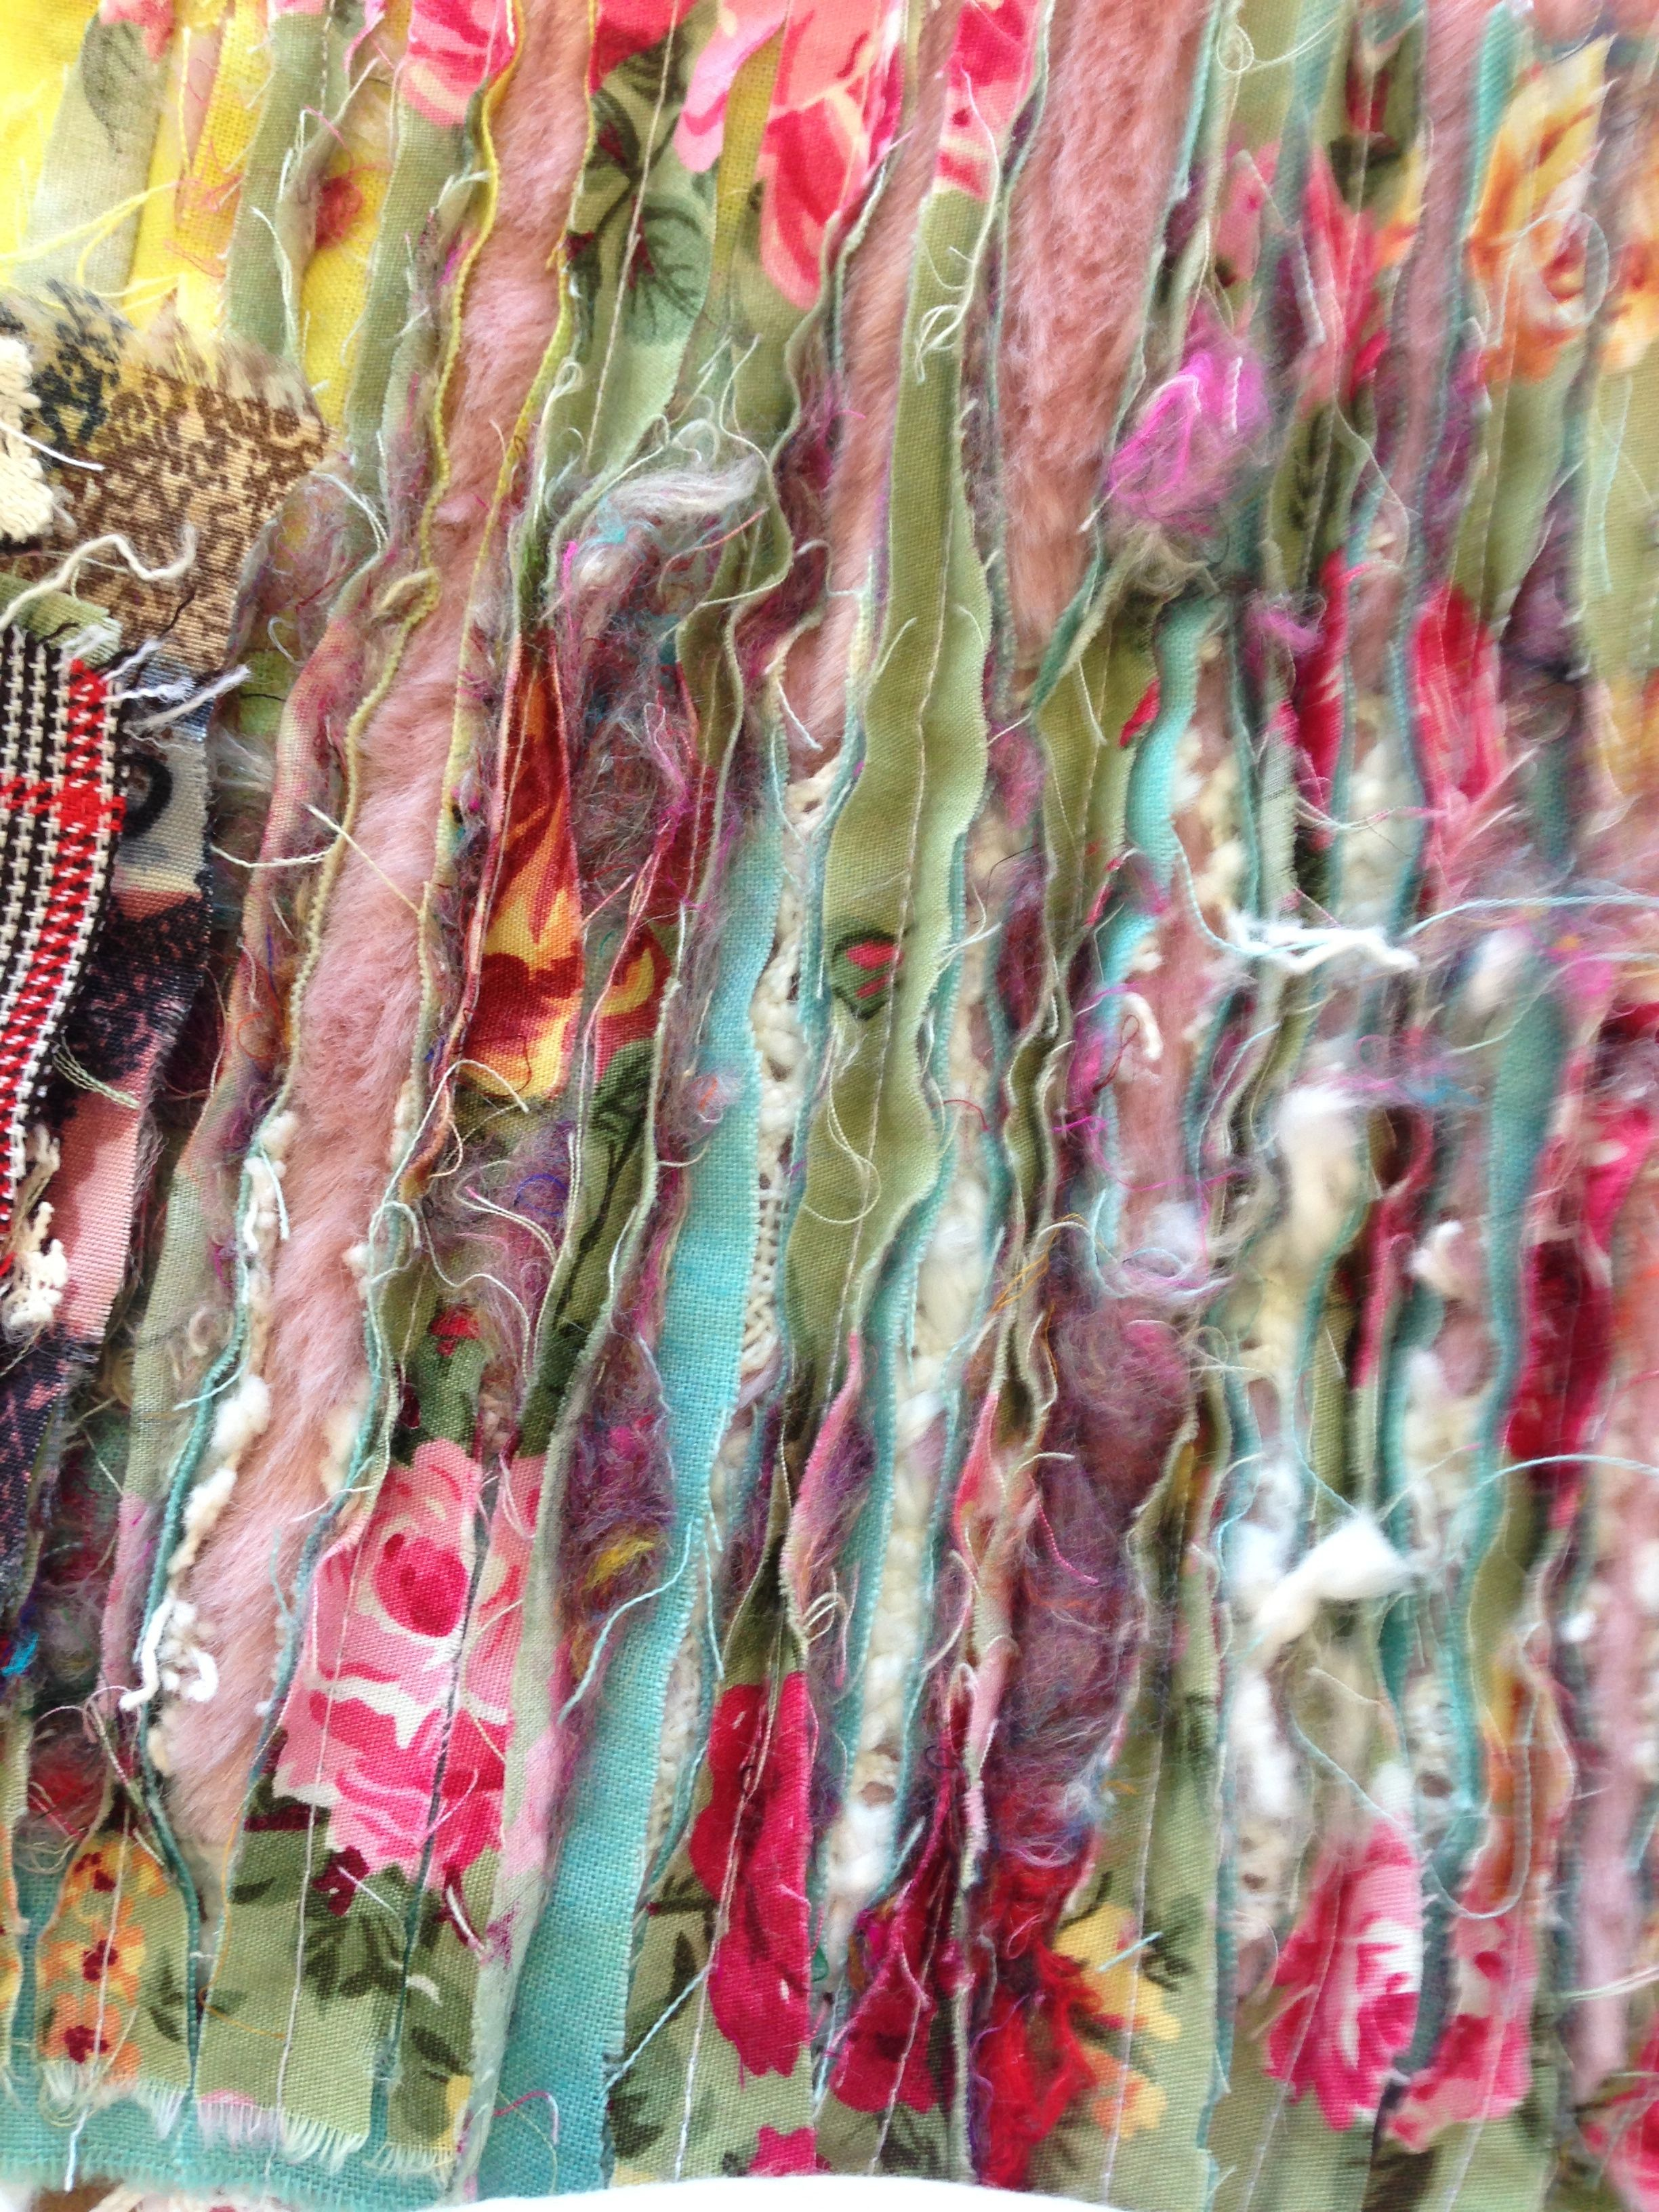 47137388 Img 1260 Jpg 2448 215 3264 Slashing Textile Art